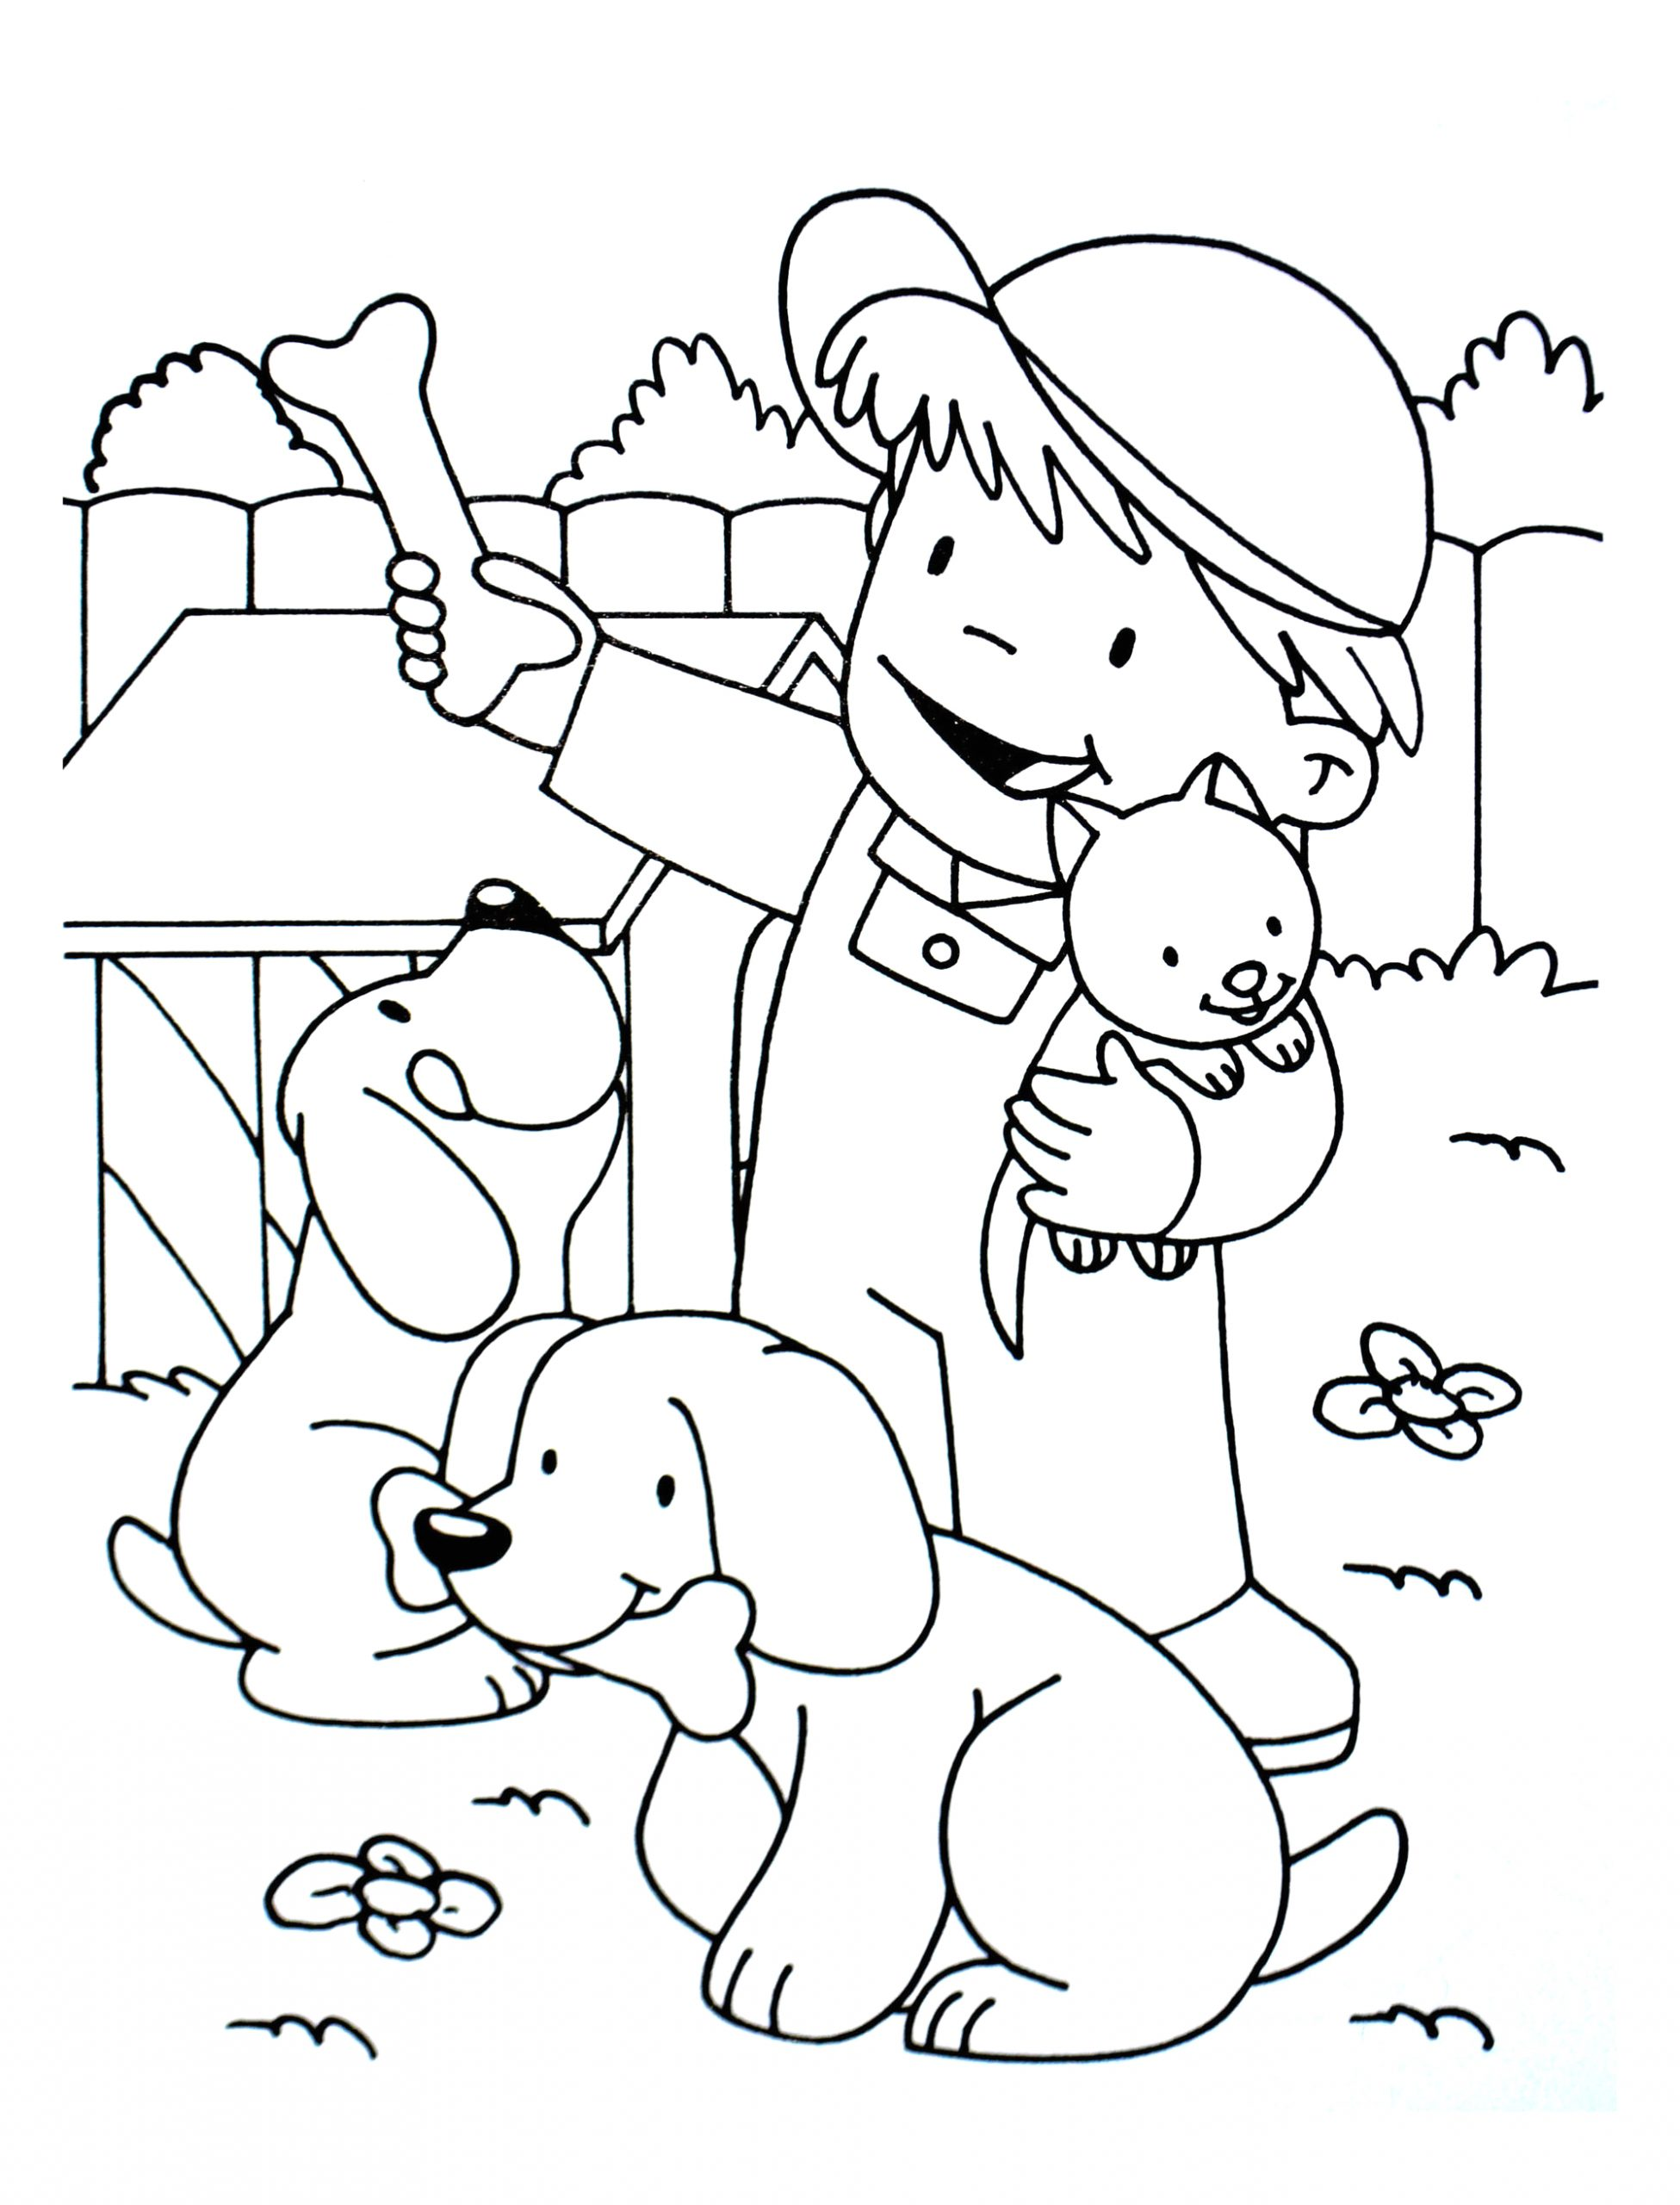 image=kids animals coloring kid with a cat and two dogs 1